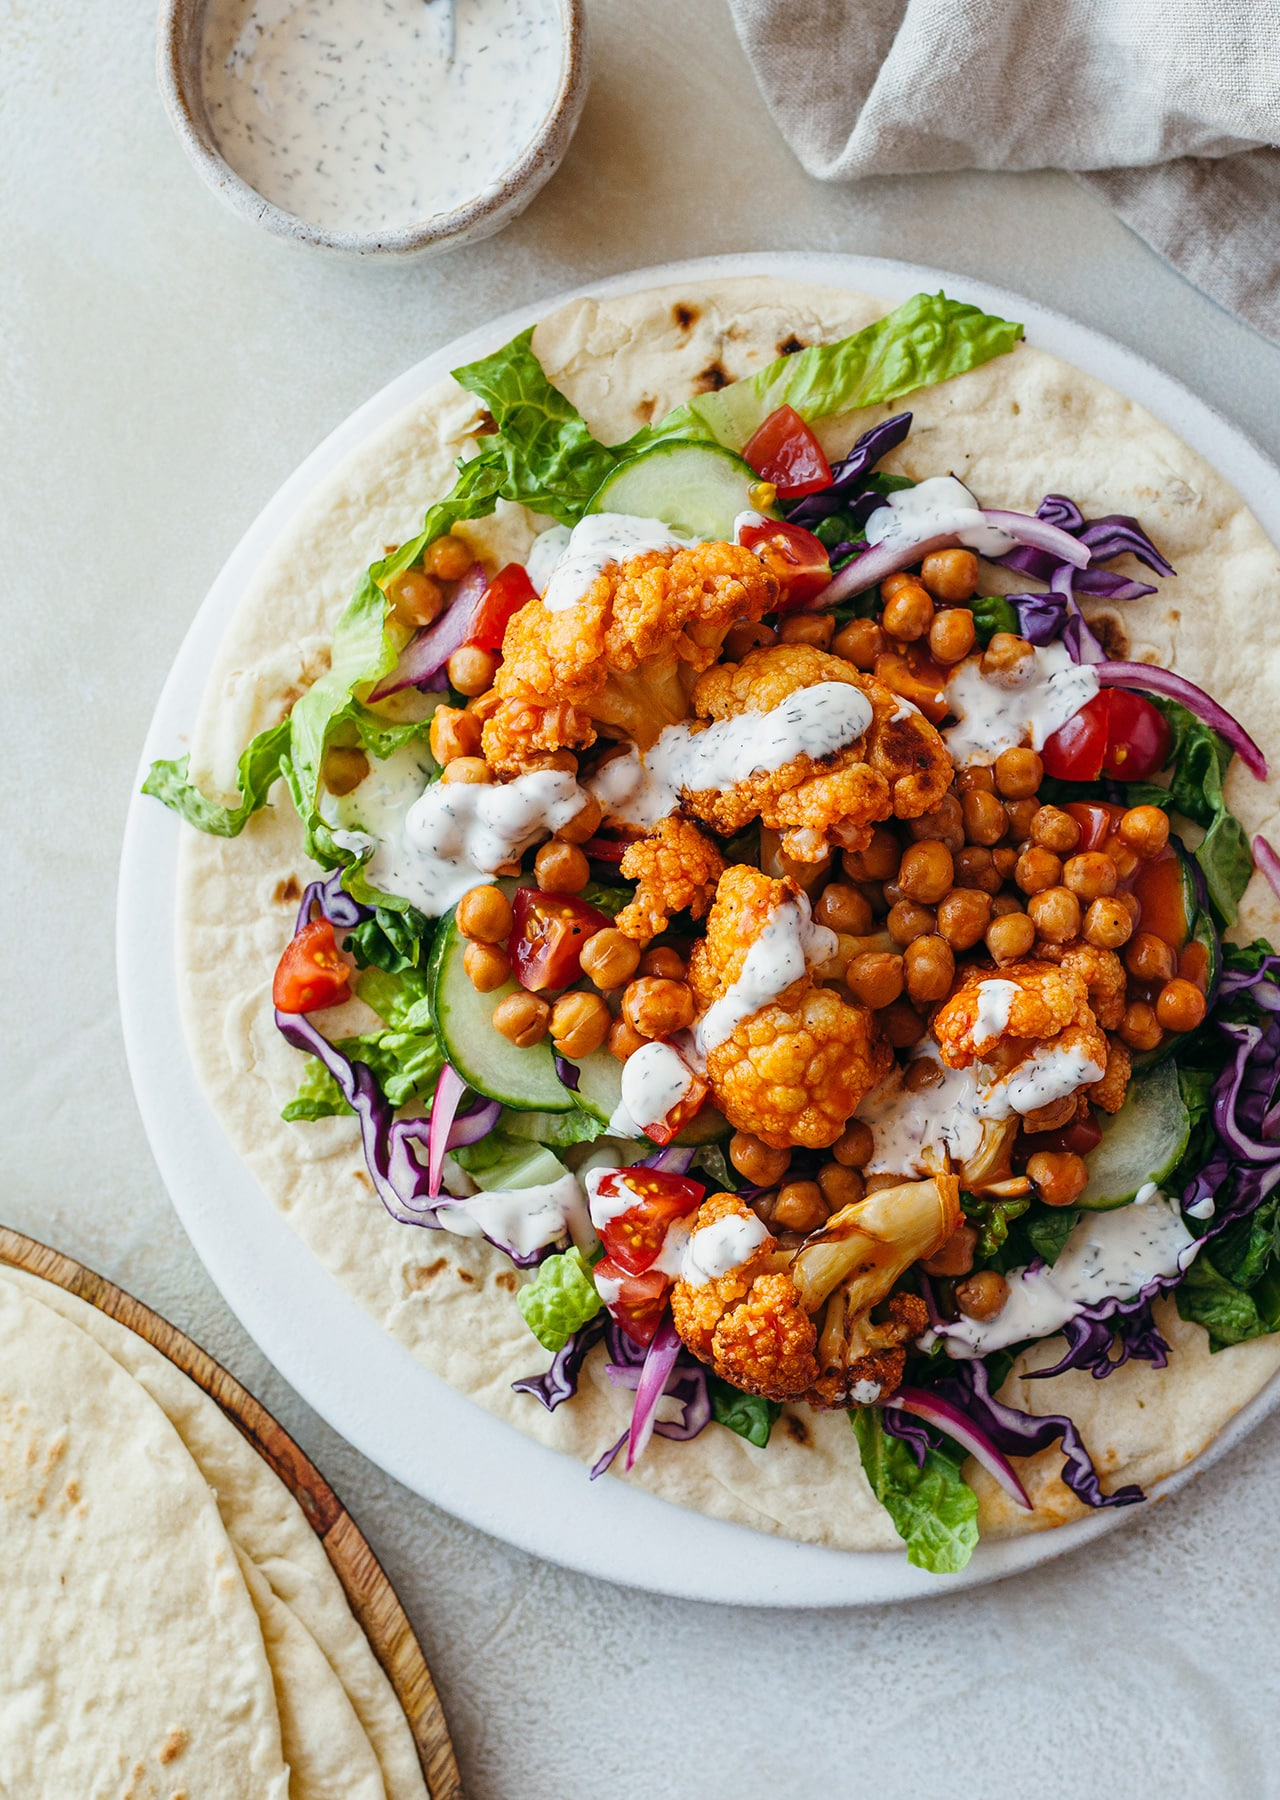 Vegan Buffalo Cauliflower Chickpea Wrap Flatbread Recipe